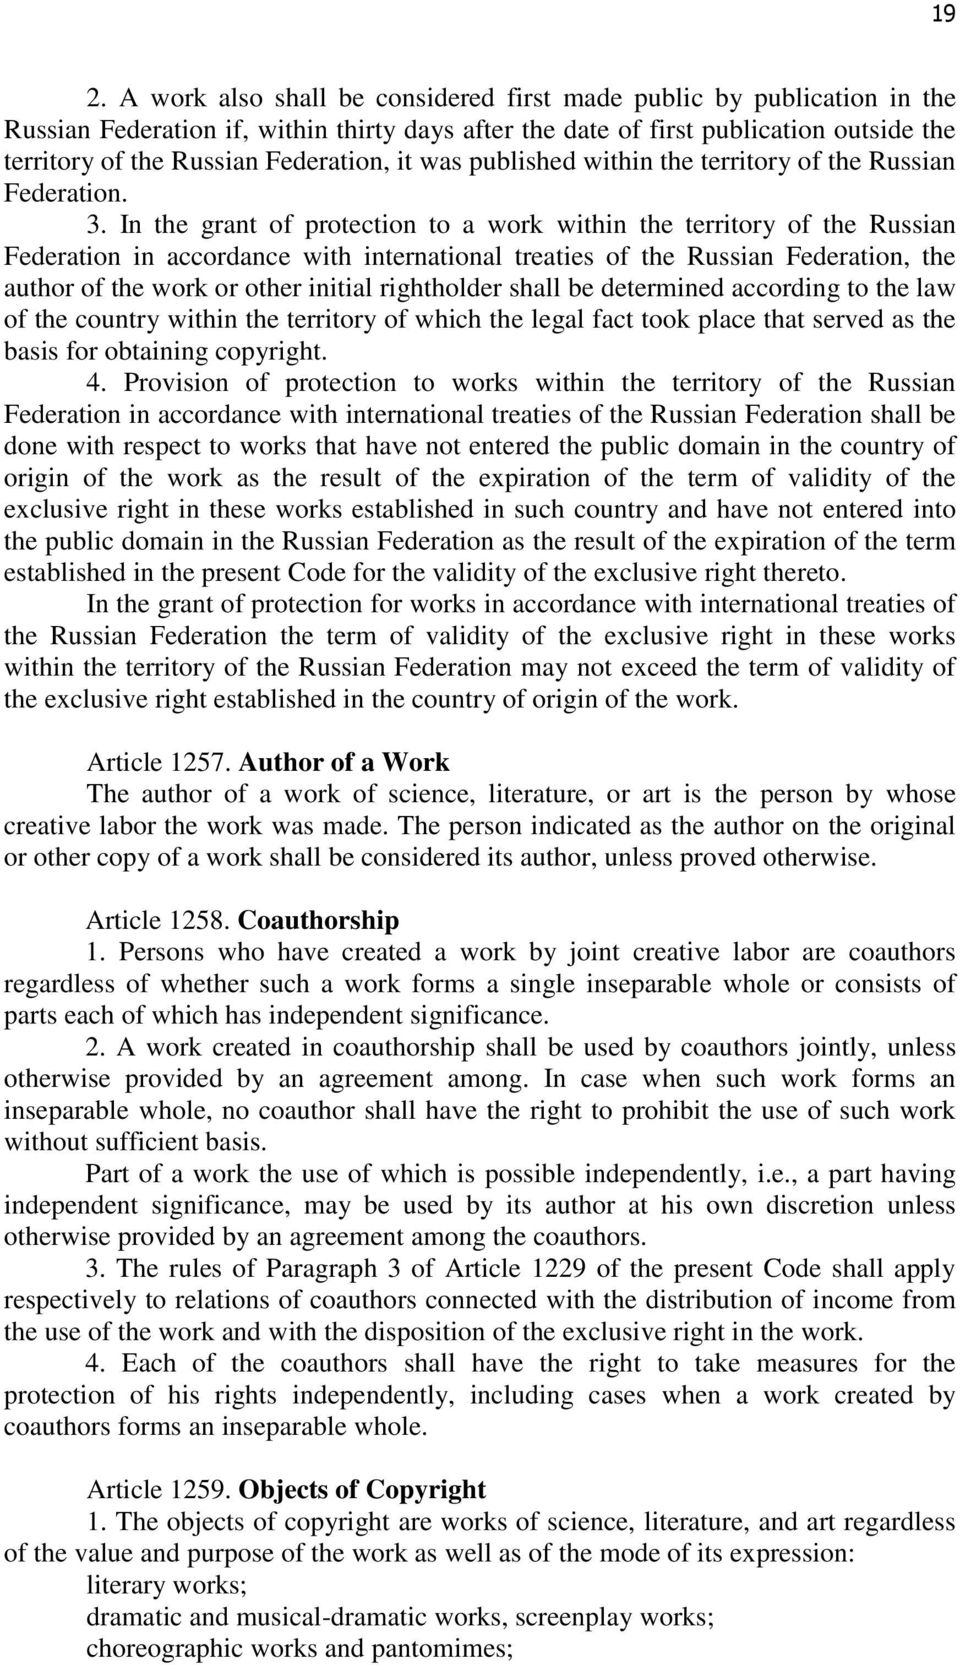 In the grant of protection to a work within the territory of the Russian Federation in accordance with international treaties of the Russian Federation, the author of the work or other initial